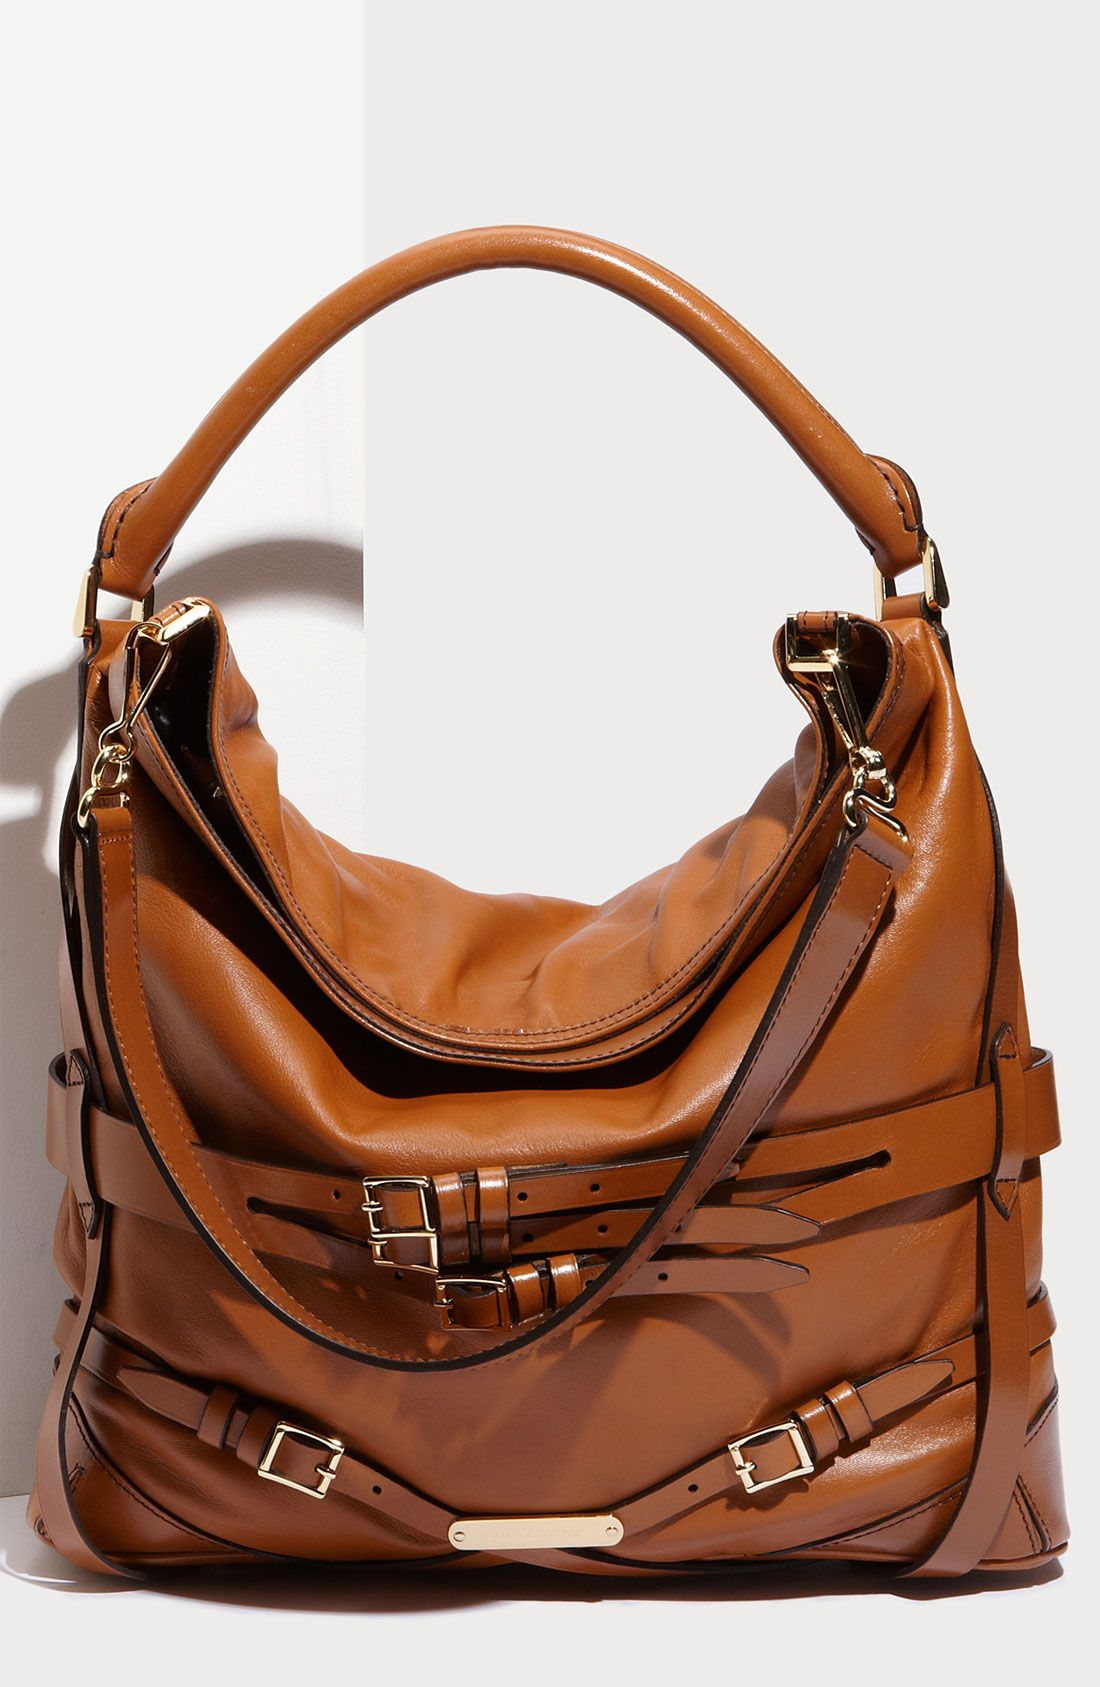 Free Shipping And Returns On Burberry Leather Hobo At Nordstrom An Assortment Of Stry Belts Corsets A Sumptuous Branded With